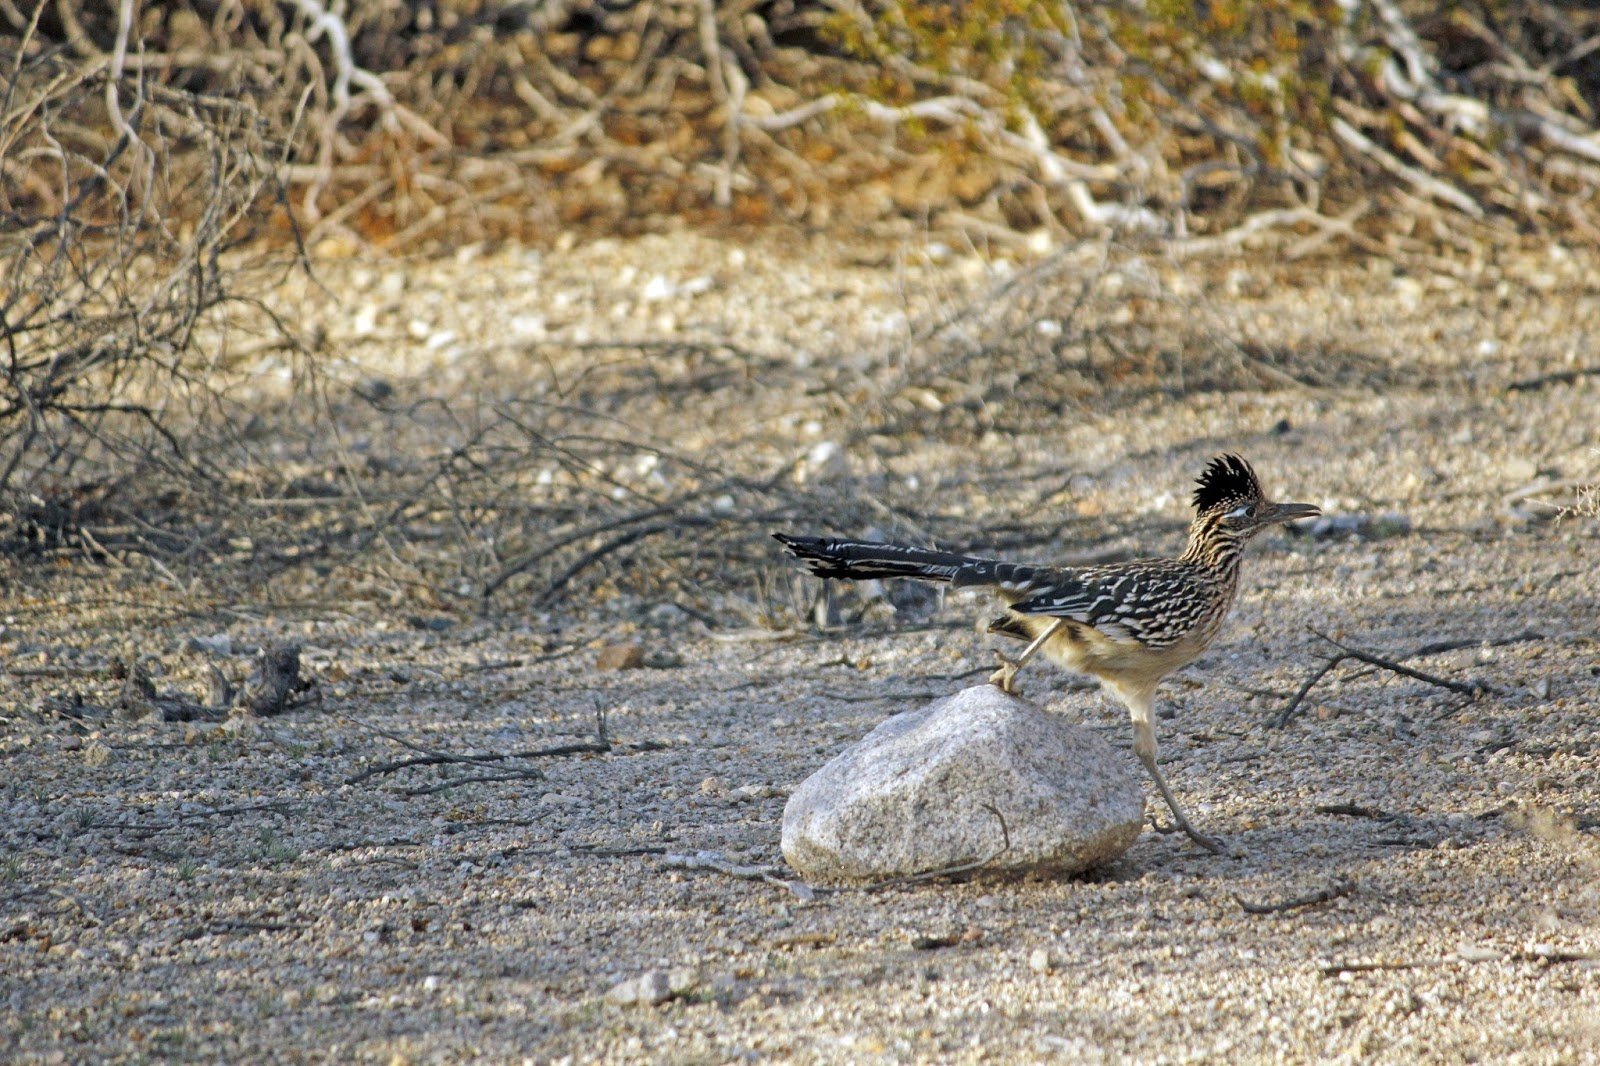 A roadrunner running fast over an obstacle on the road.